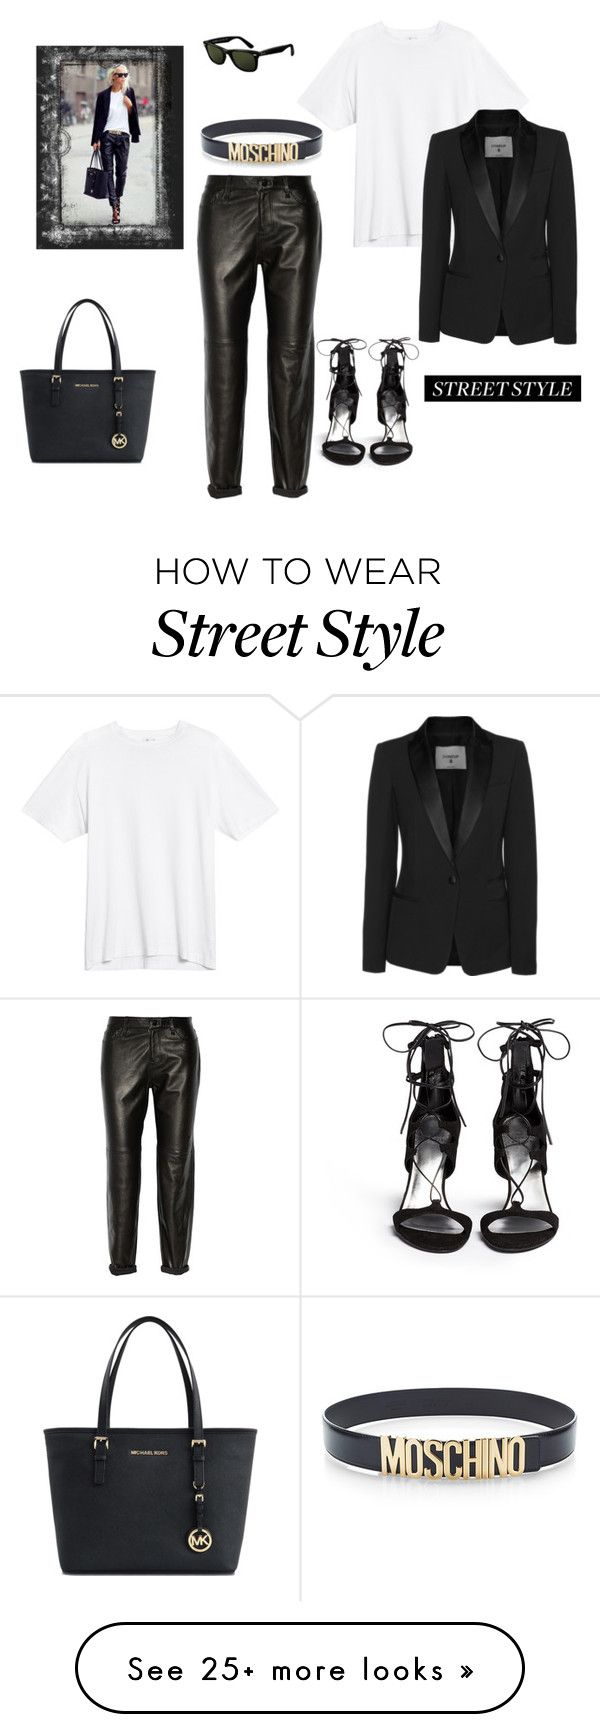 """""""Old, but classic by now... Timeless style"""" by juliabachmann on Polyvore featuring J Brand, Michael Kors, Dondup, Moschino, Ray-Ban and Stuart Weitzman"""